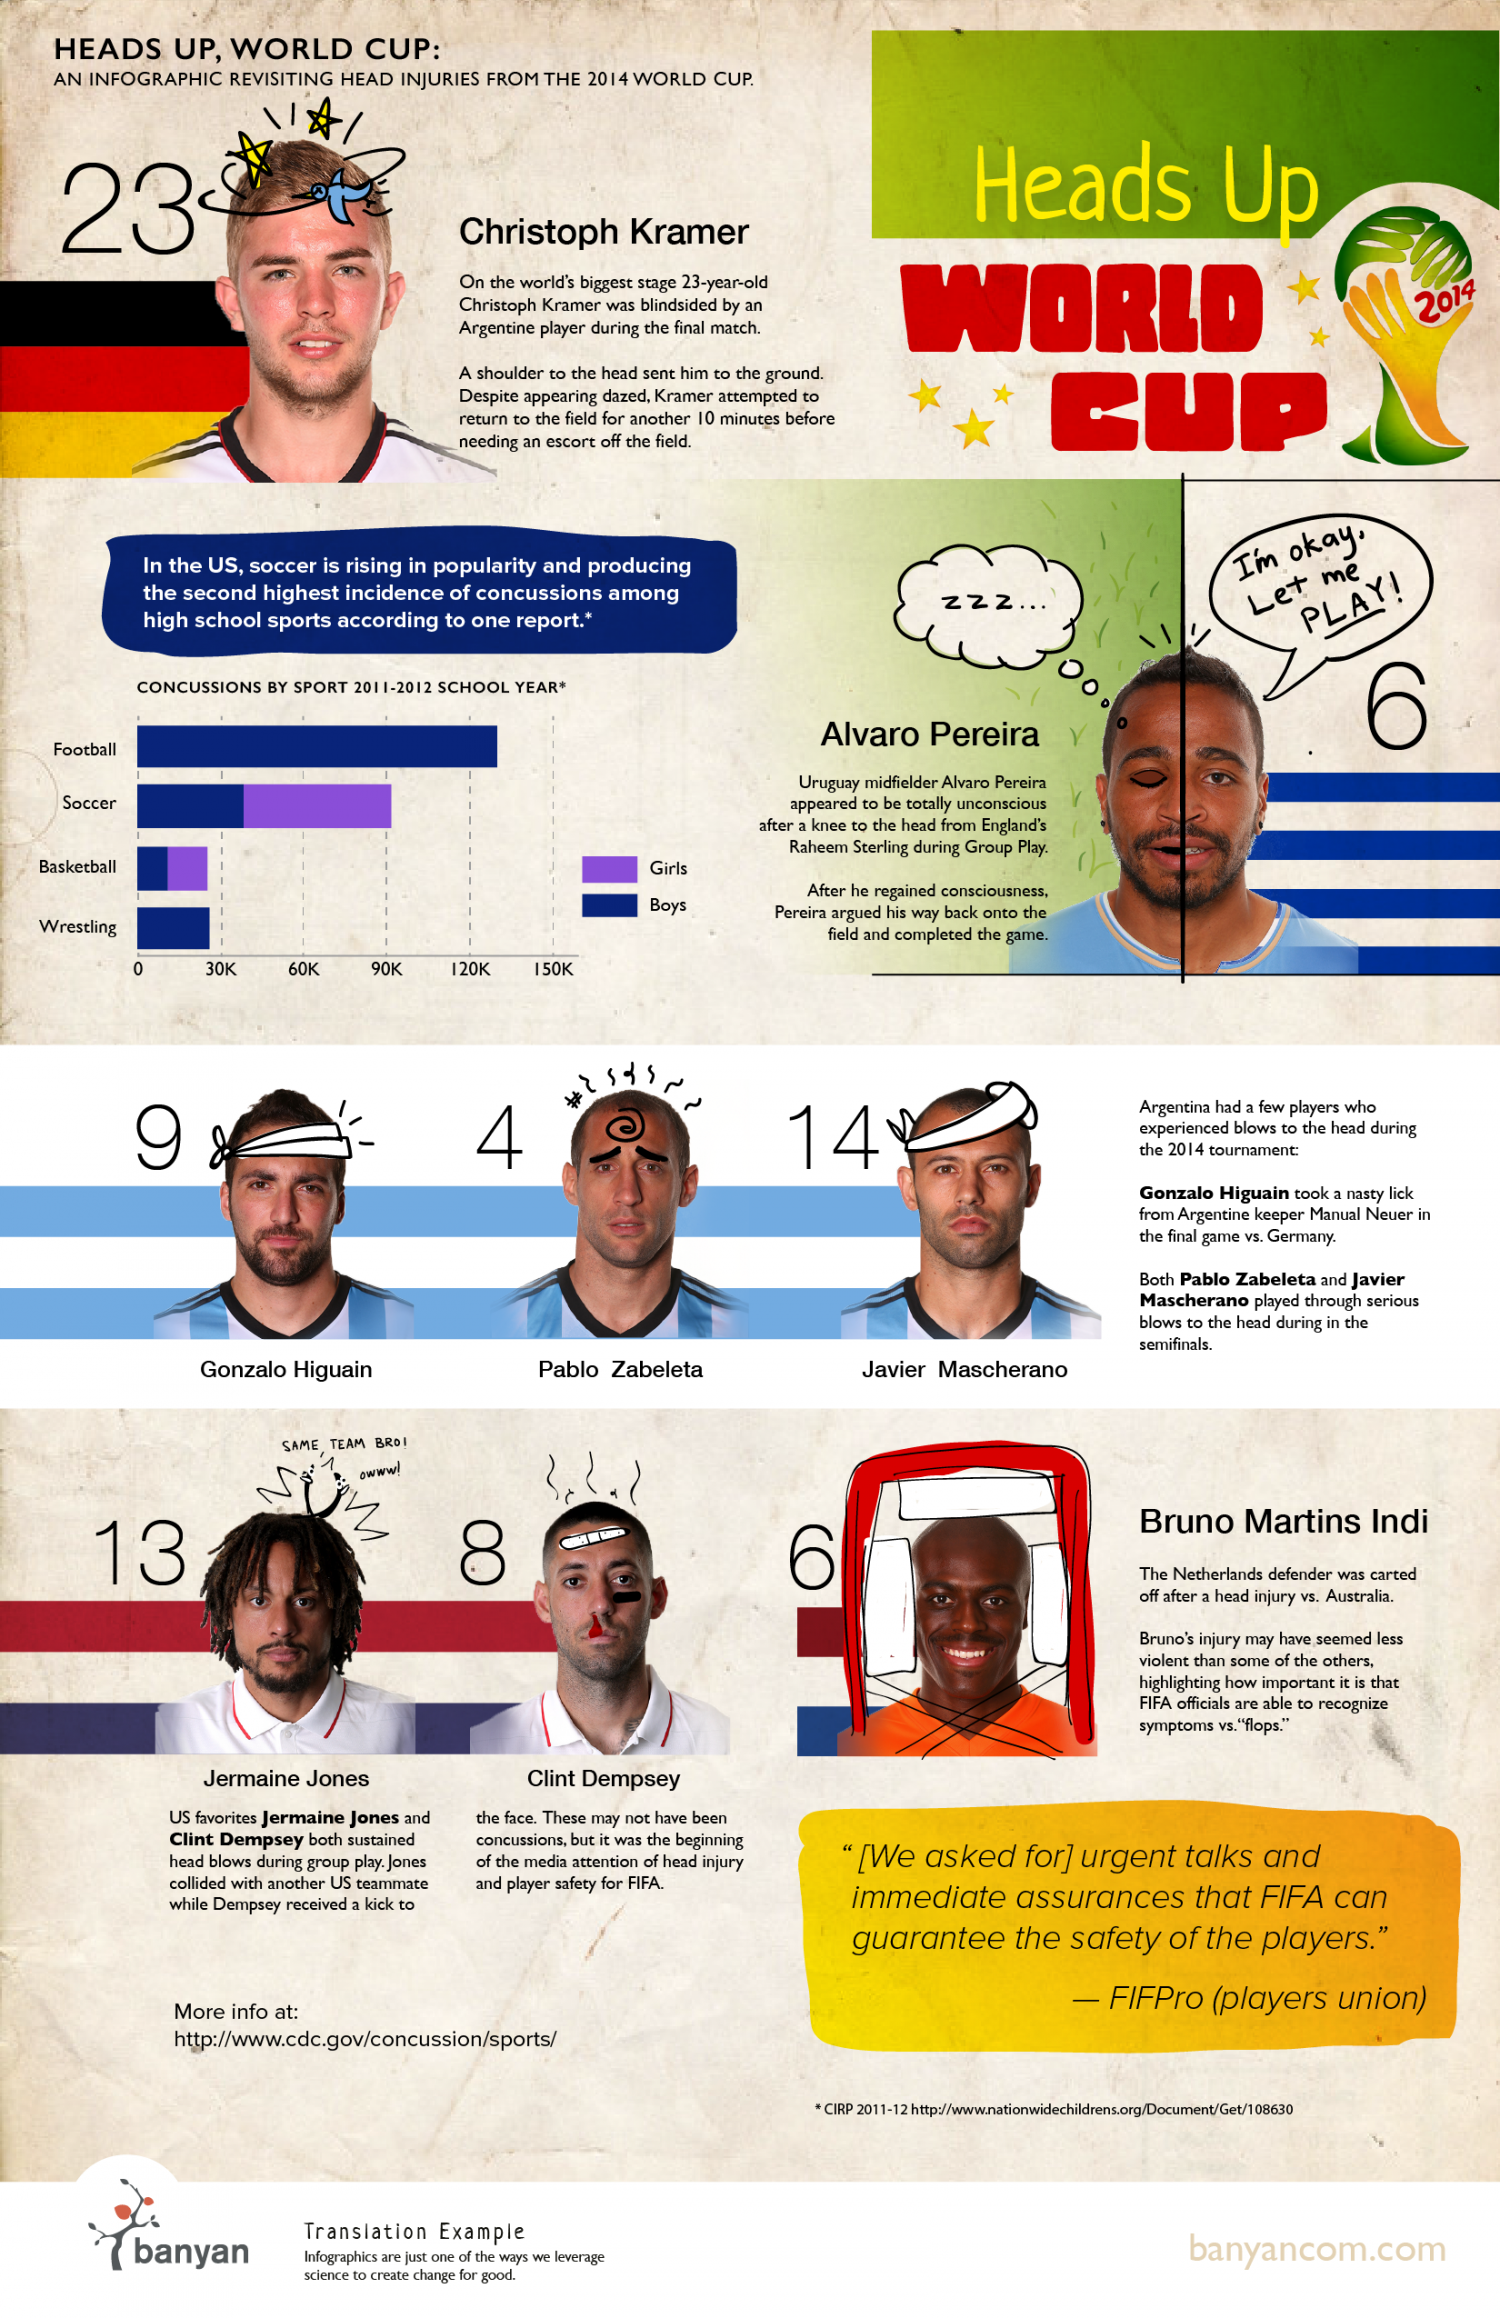 Heads Up, World Cup Infographic